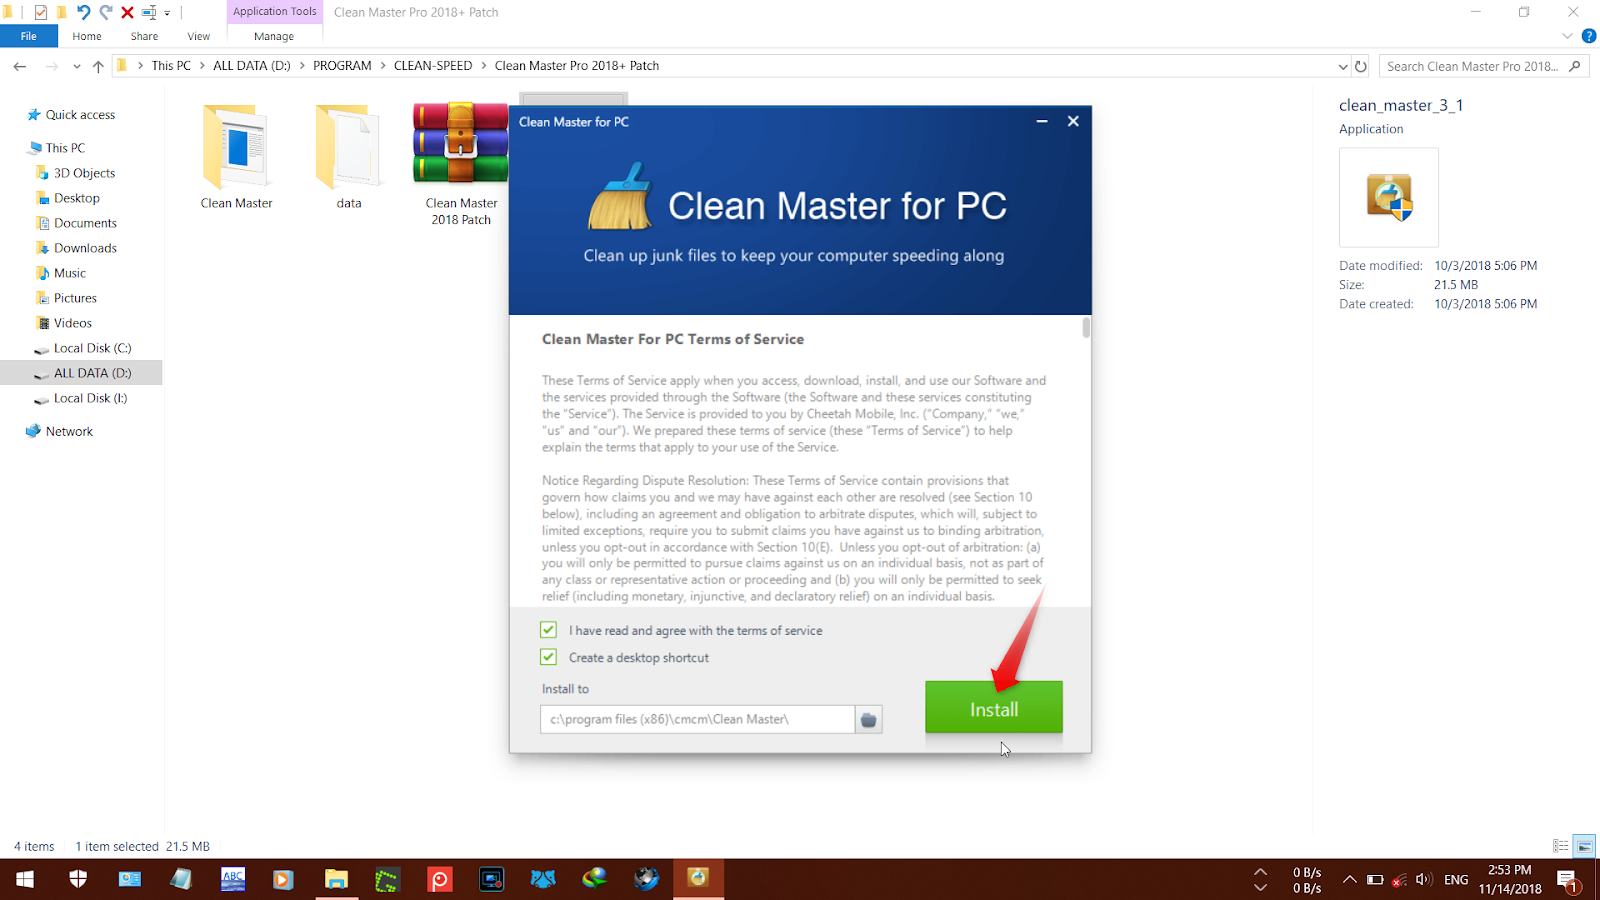 aloneghost-xz : Clean Master Pro for PC 2018+ Patch